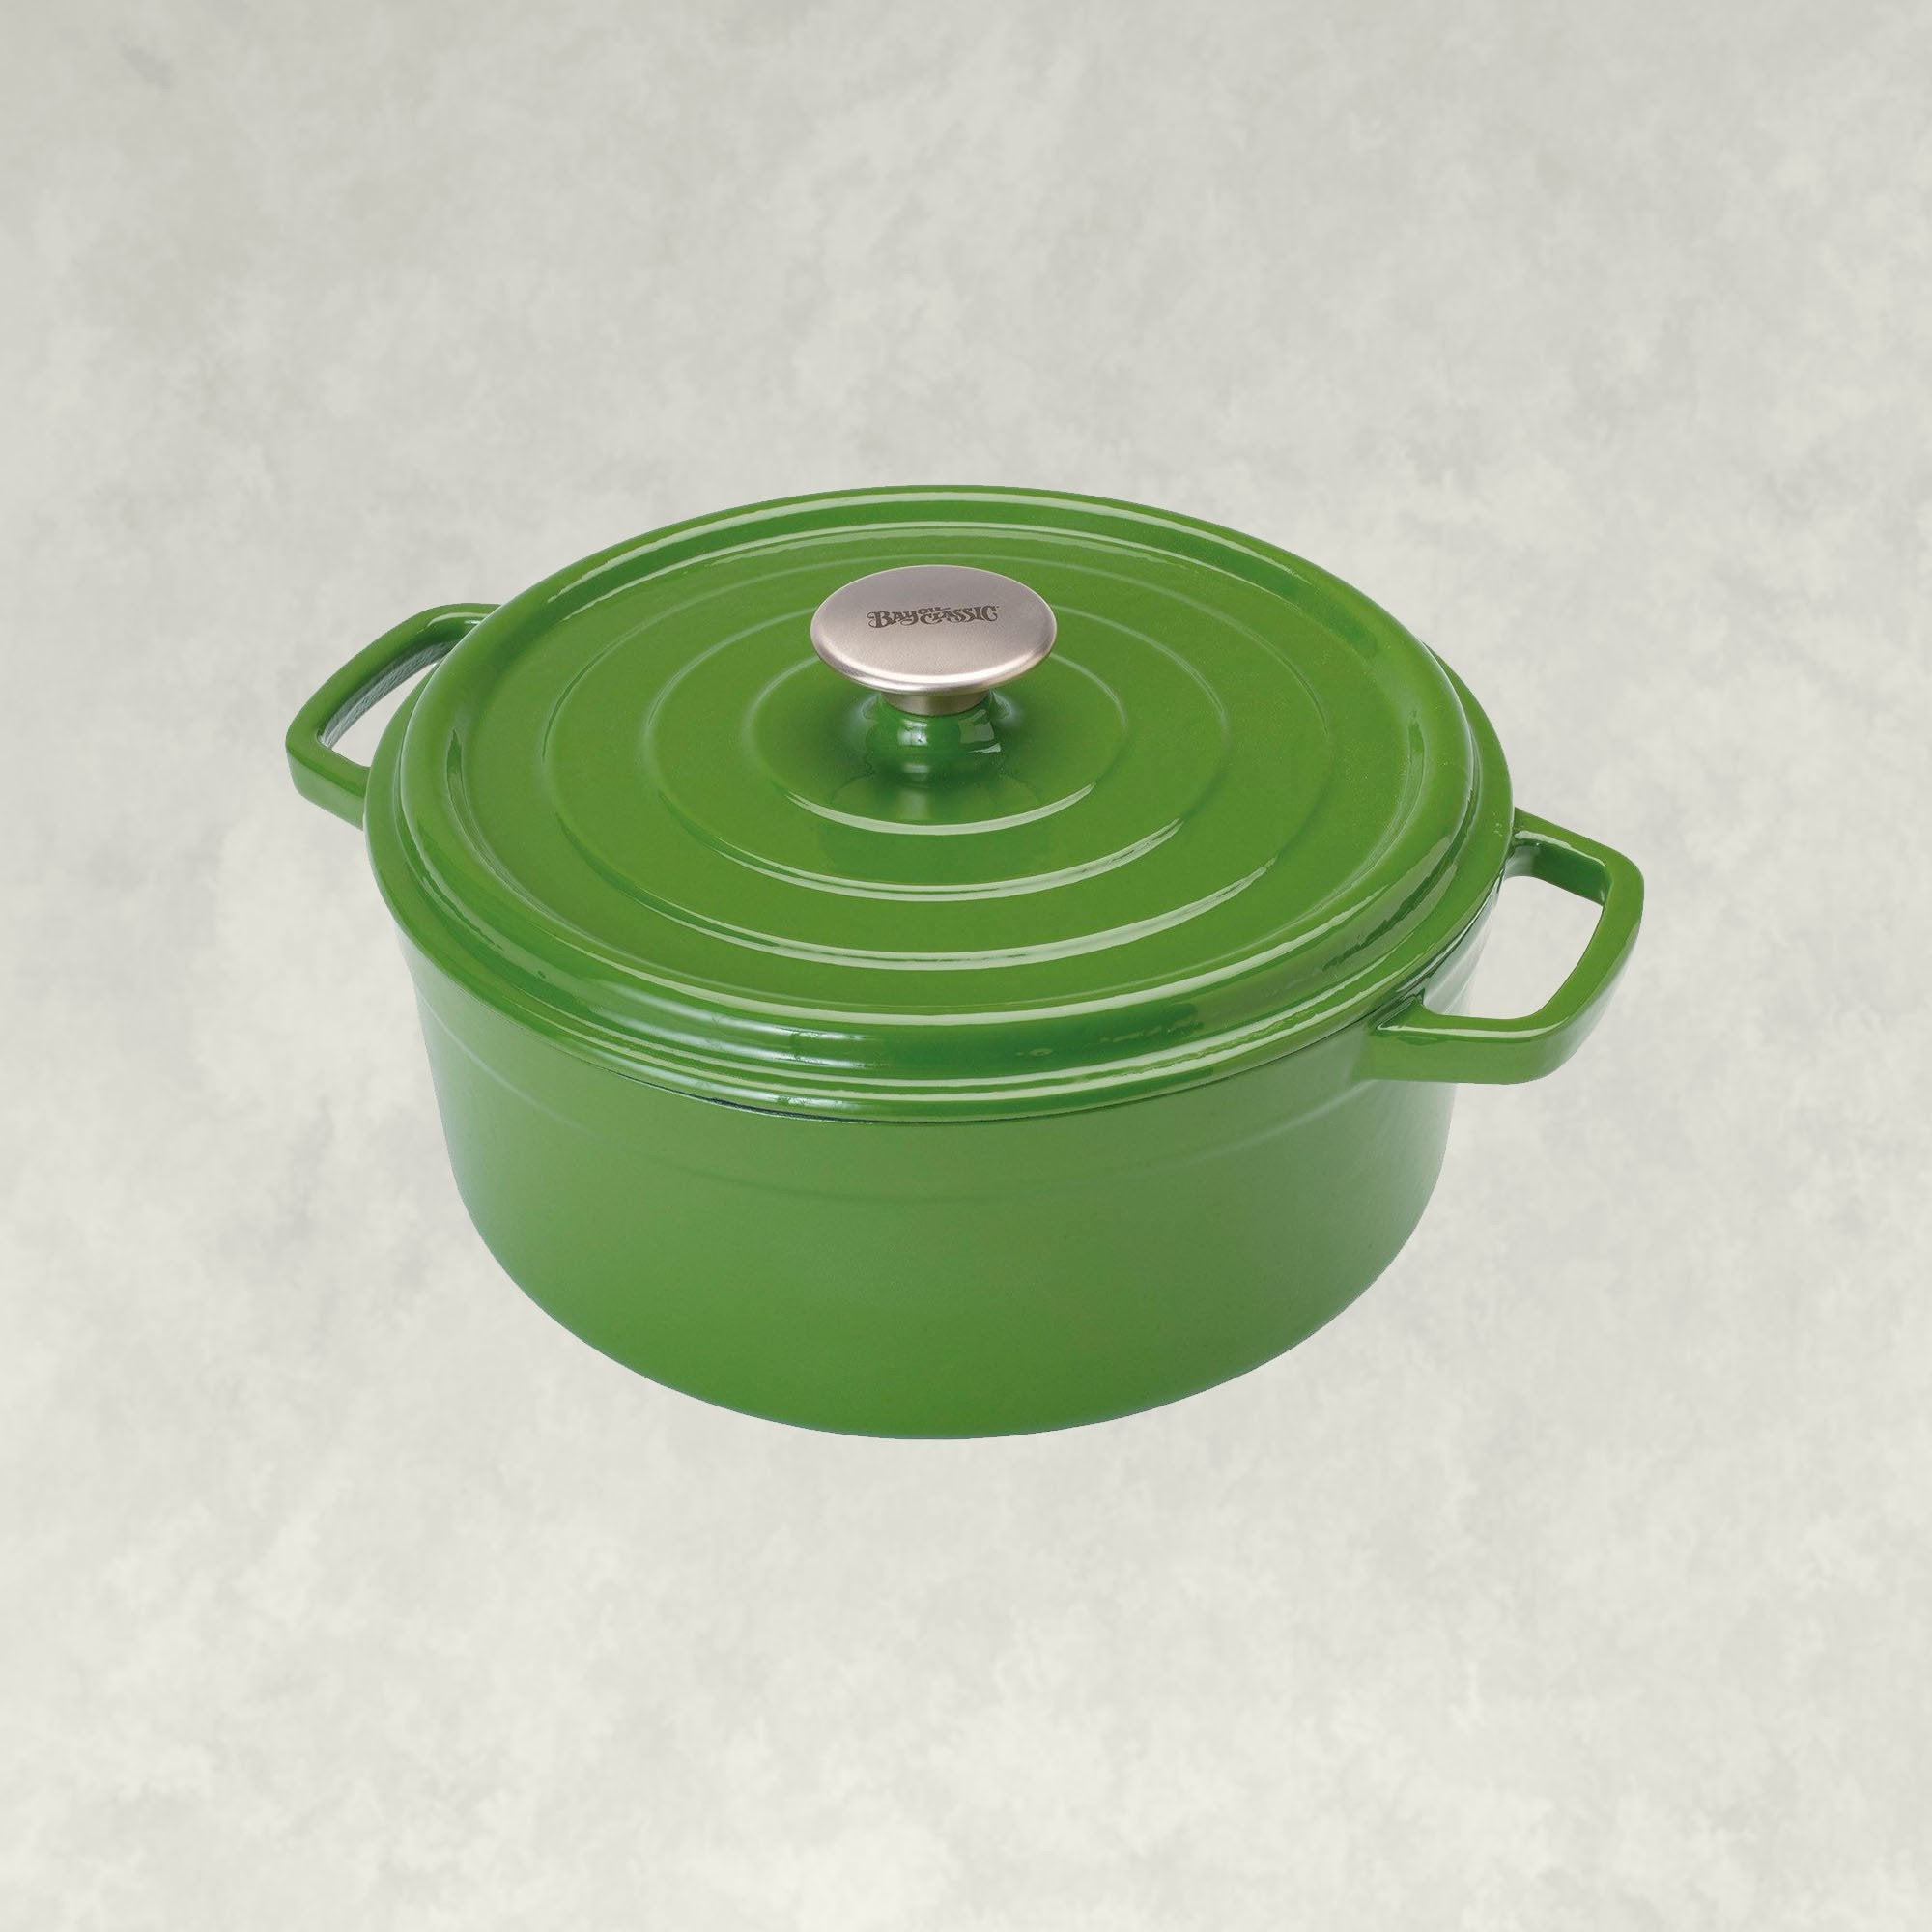 free shipping, Exclusive Enamel Cast Iron Collection, in cypress green